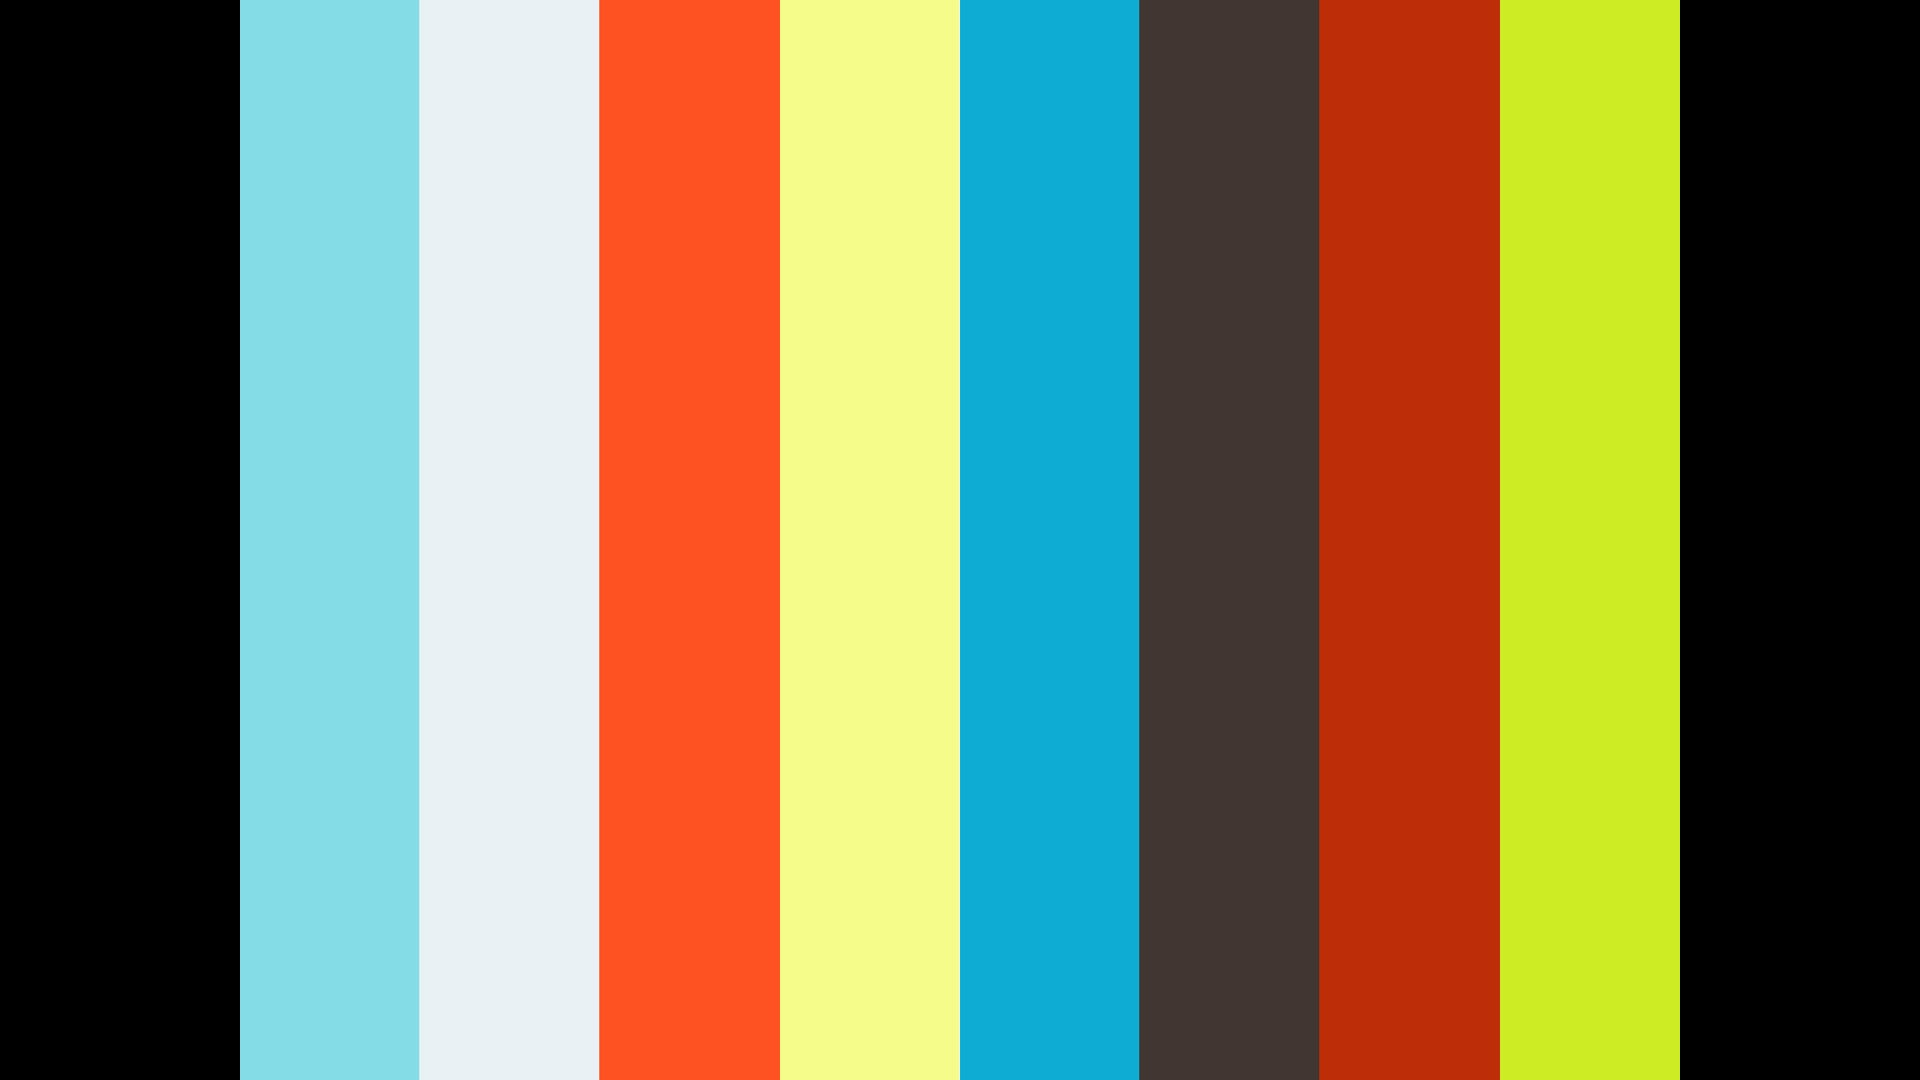 BUILDING FAITH 8-28-16